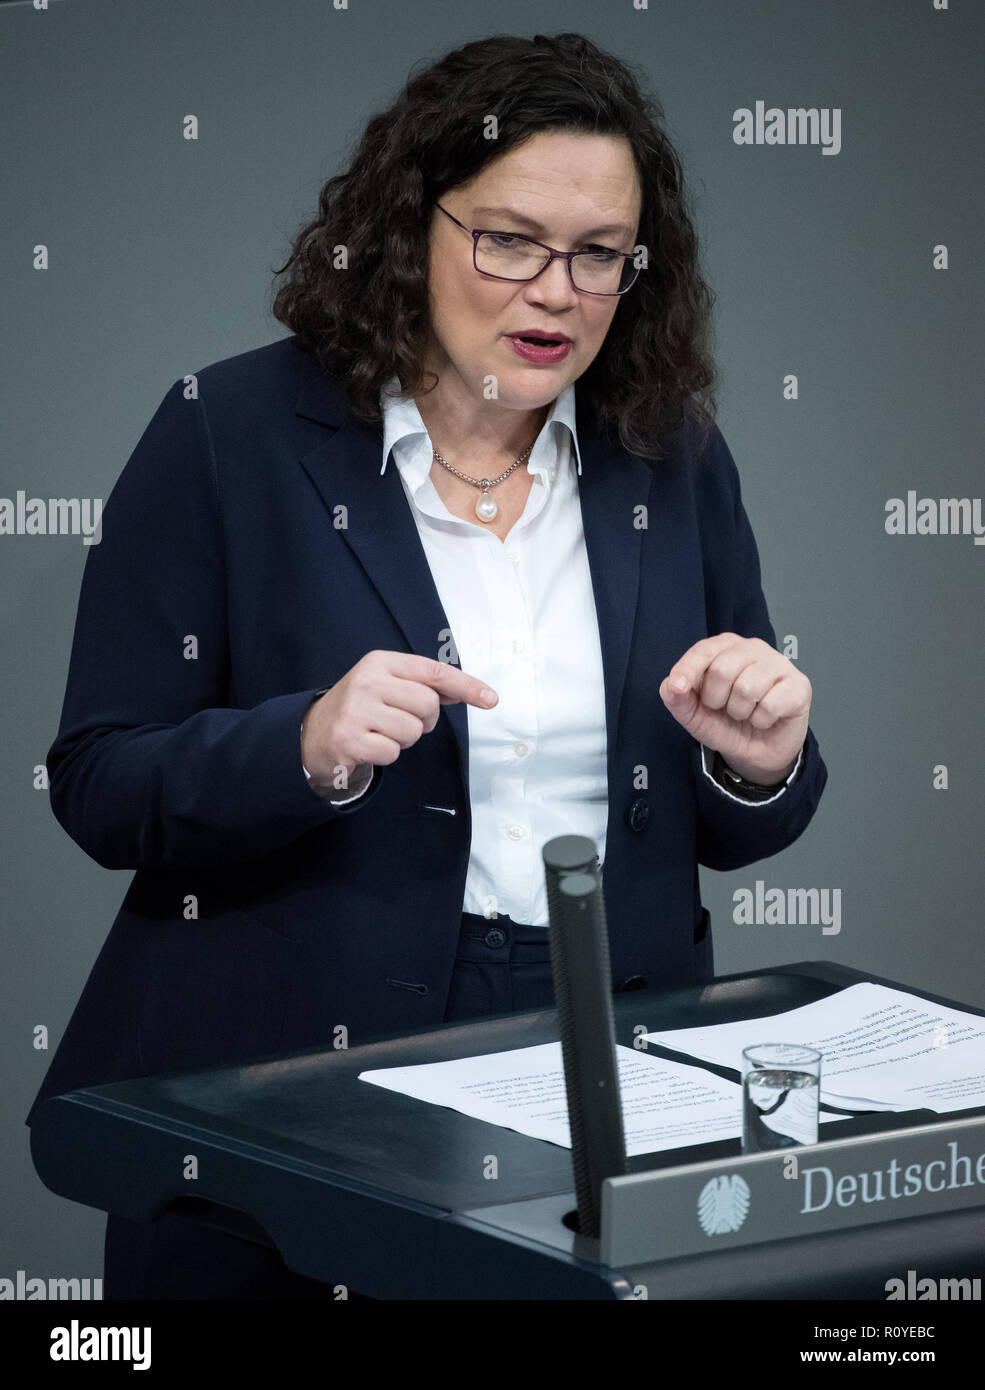 Berlin, Germany. 08th Nov, 2018. Andrea Nahles, chairwoman of the SPD parliamentary group, will speak during the plenary session of the German Bundestag. Topics of the 61st session of the 19th legislative period include the pension package introduced by the Federal Government, additional safe countries of origin, tax relief for families, changes in asylum law, accelerated traffic planning and a current hour on the INF (Intermediate Range Nuclear Forces) nuclear disarmament treaty. Credit: Bernd von Jutrczenka/dpa/Alamy Live News - Stock Image